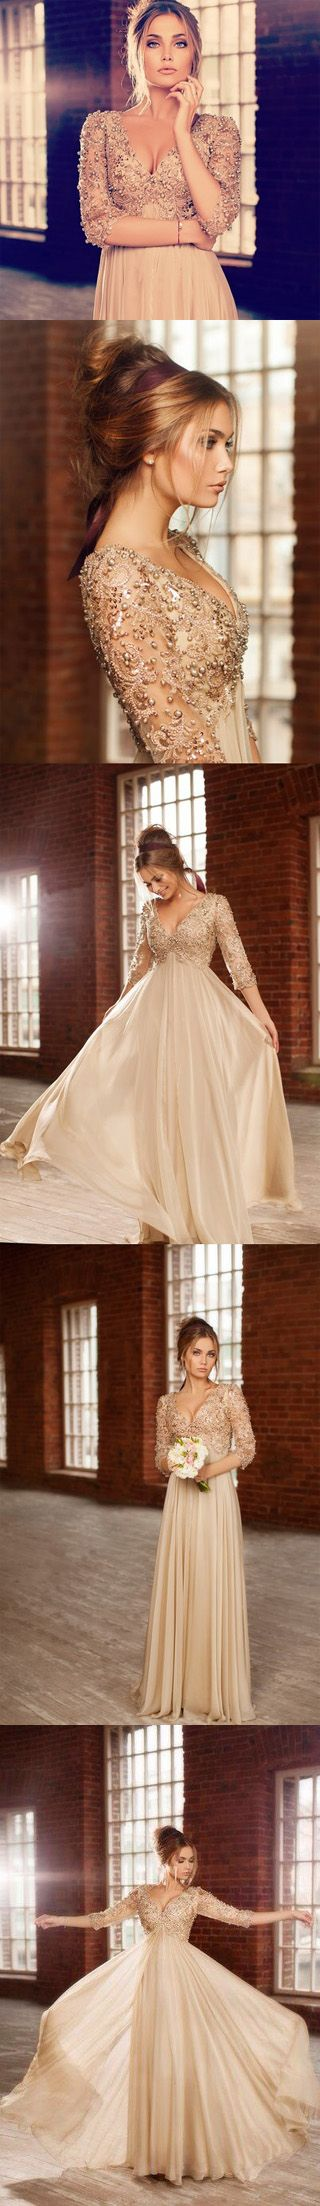 $144--Beautiful Long Prom Dresses 2014 New Arrival Deep V-neck 3/4 Sleeves Beaded A-line Chiffon Evening Dresses #prom dress,evening dress cocktail dress occasion dress http://www.wedding-dressuk.co.uk/prom-dresses-uk63_1